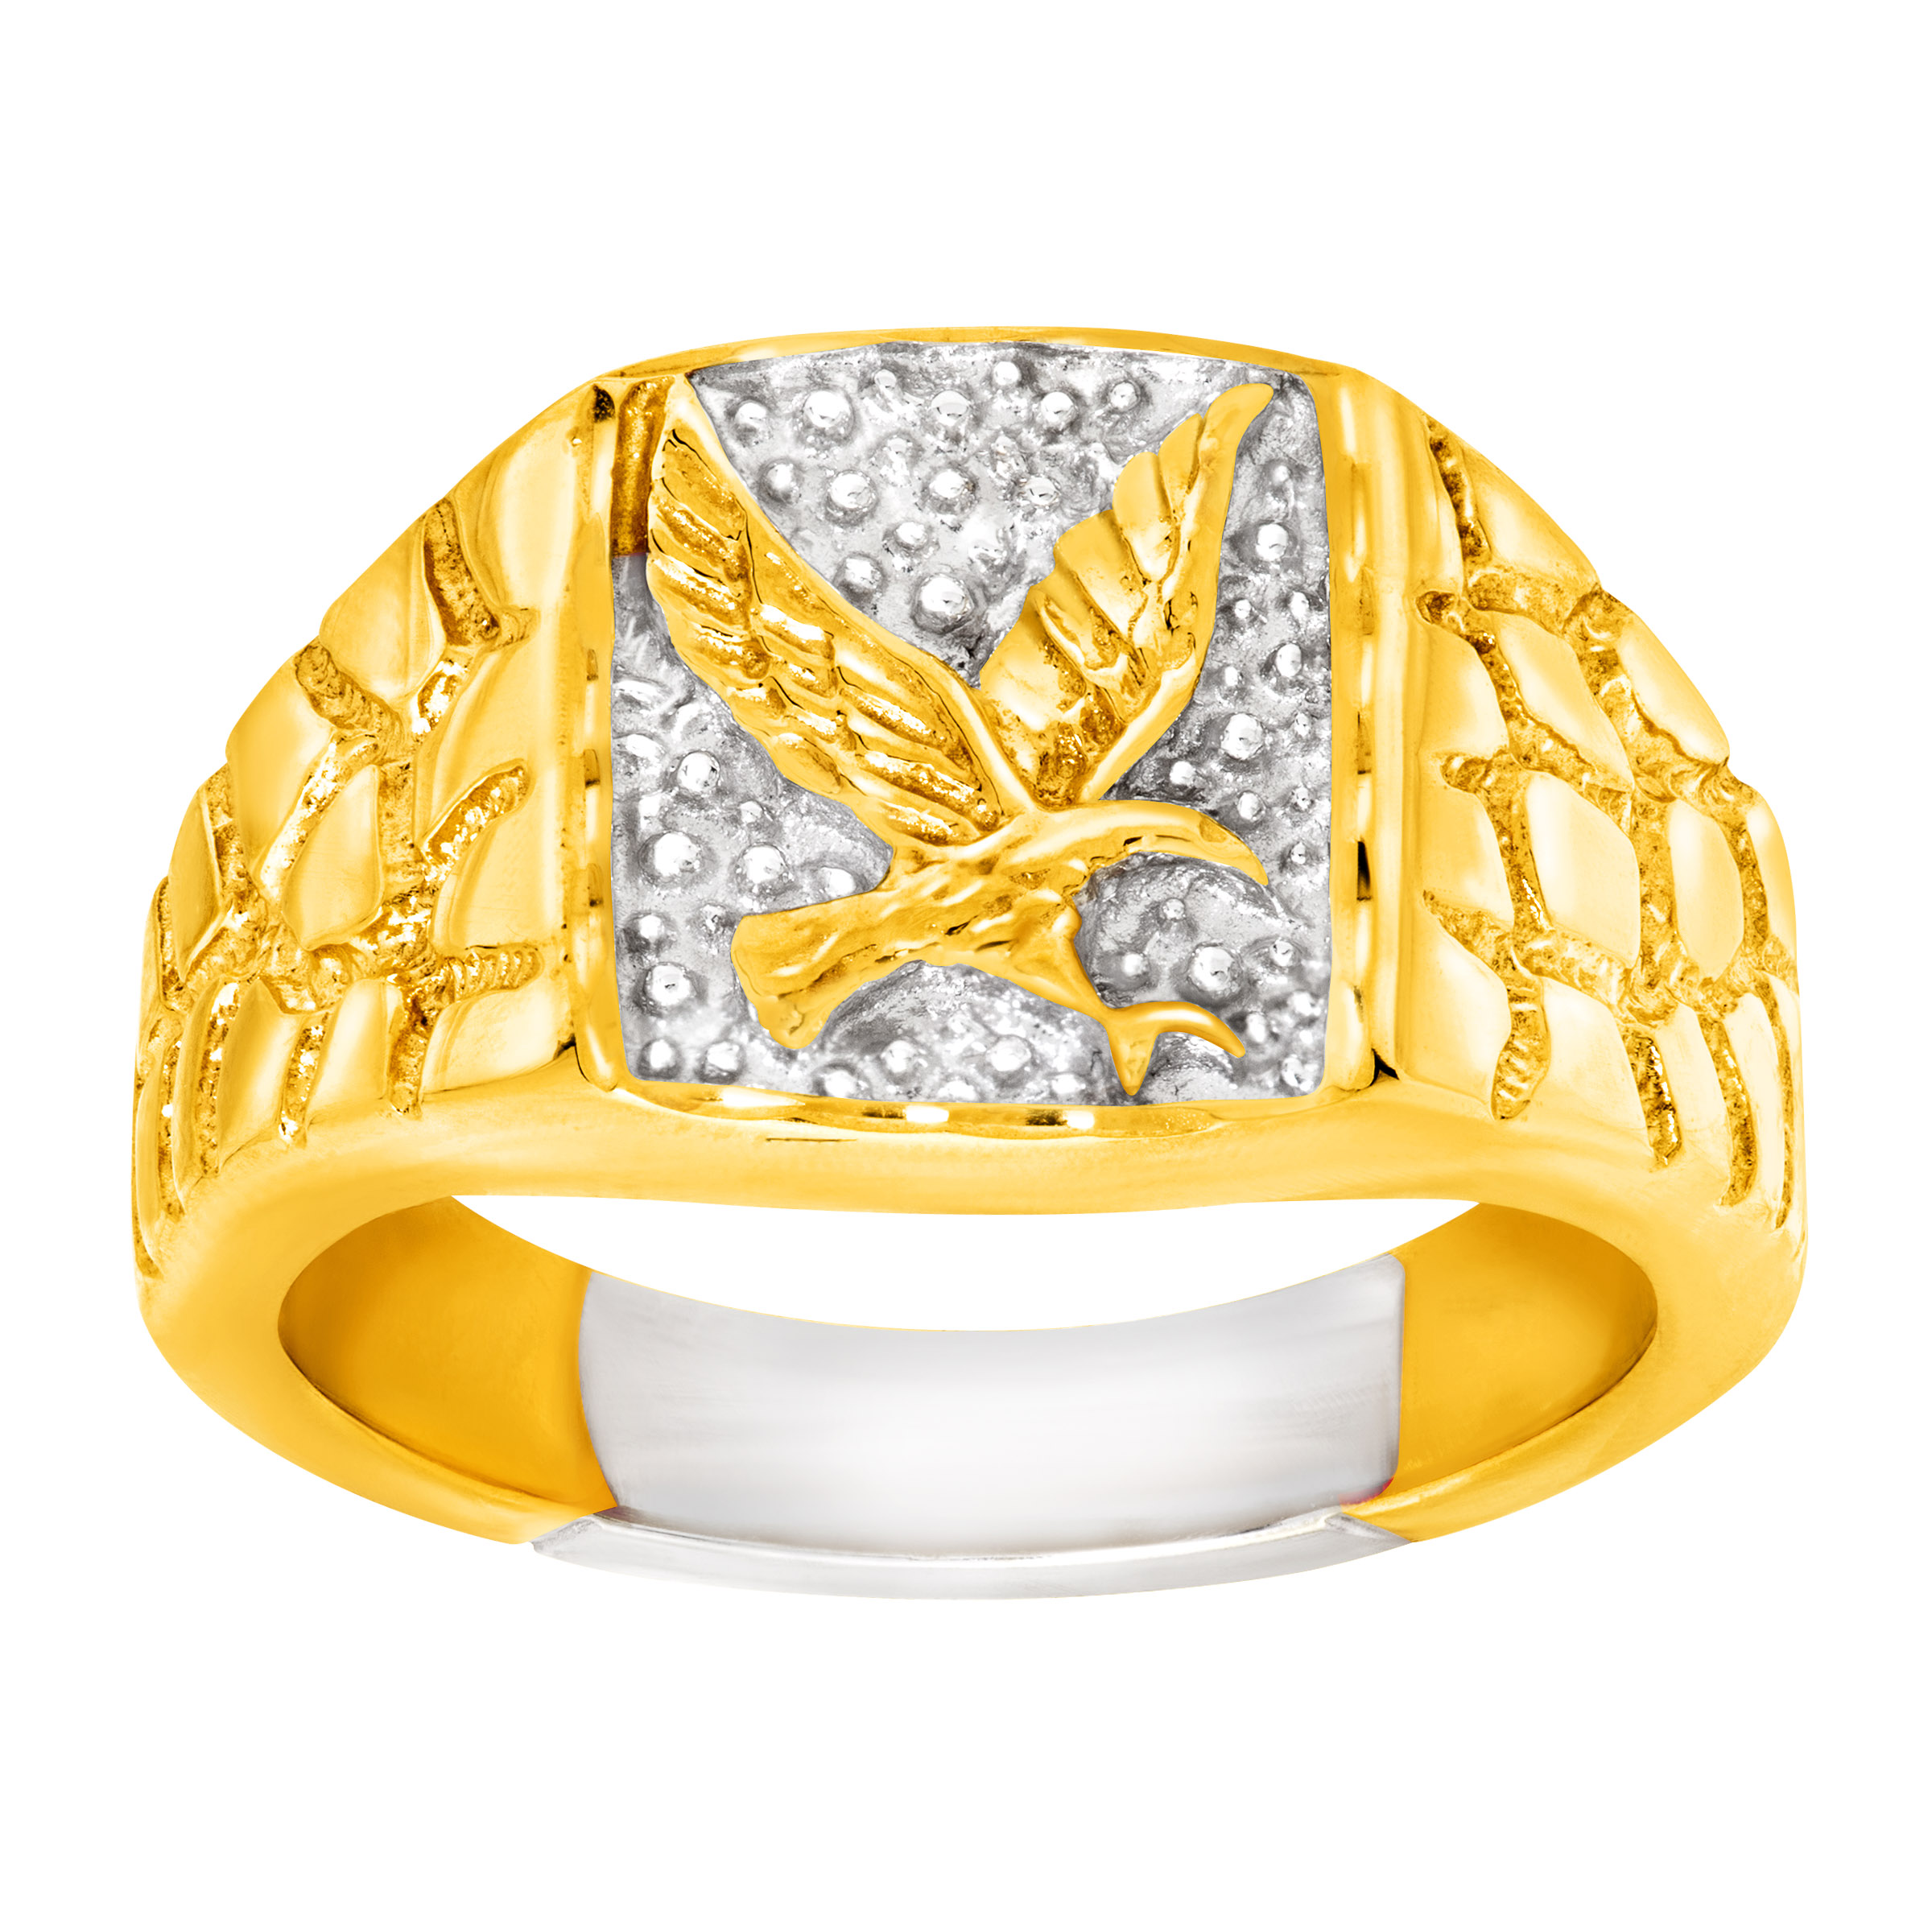 Men's Eagle Signet Ring in 14kt Gold-Plated Sterling Silver